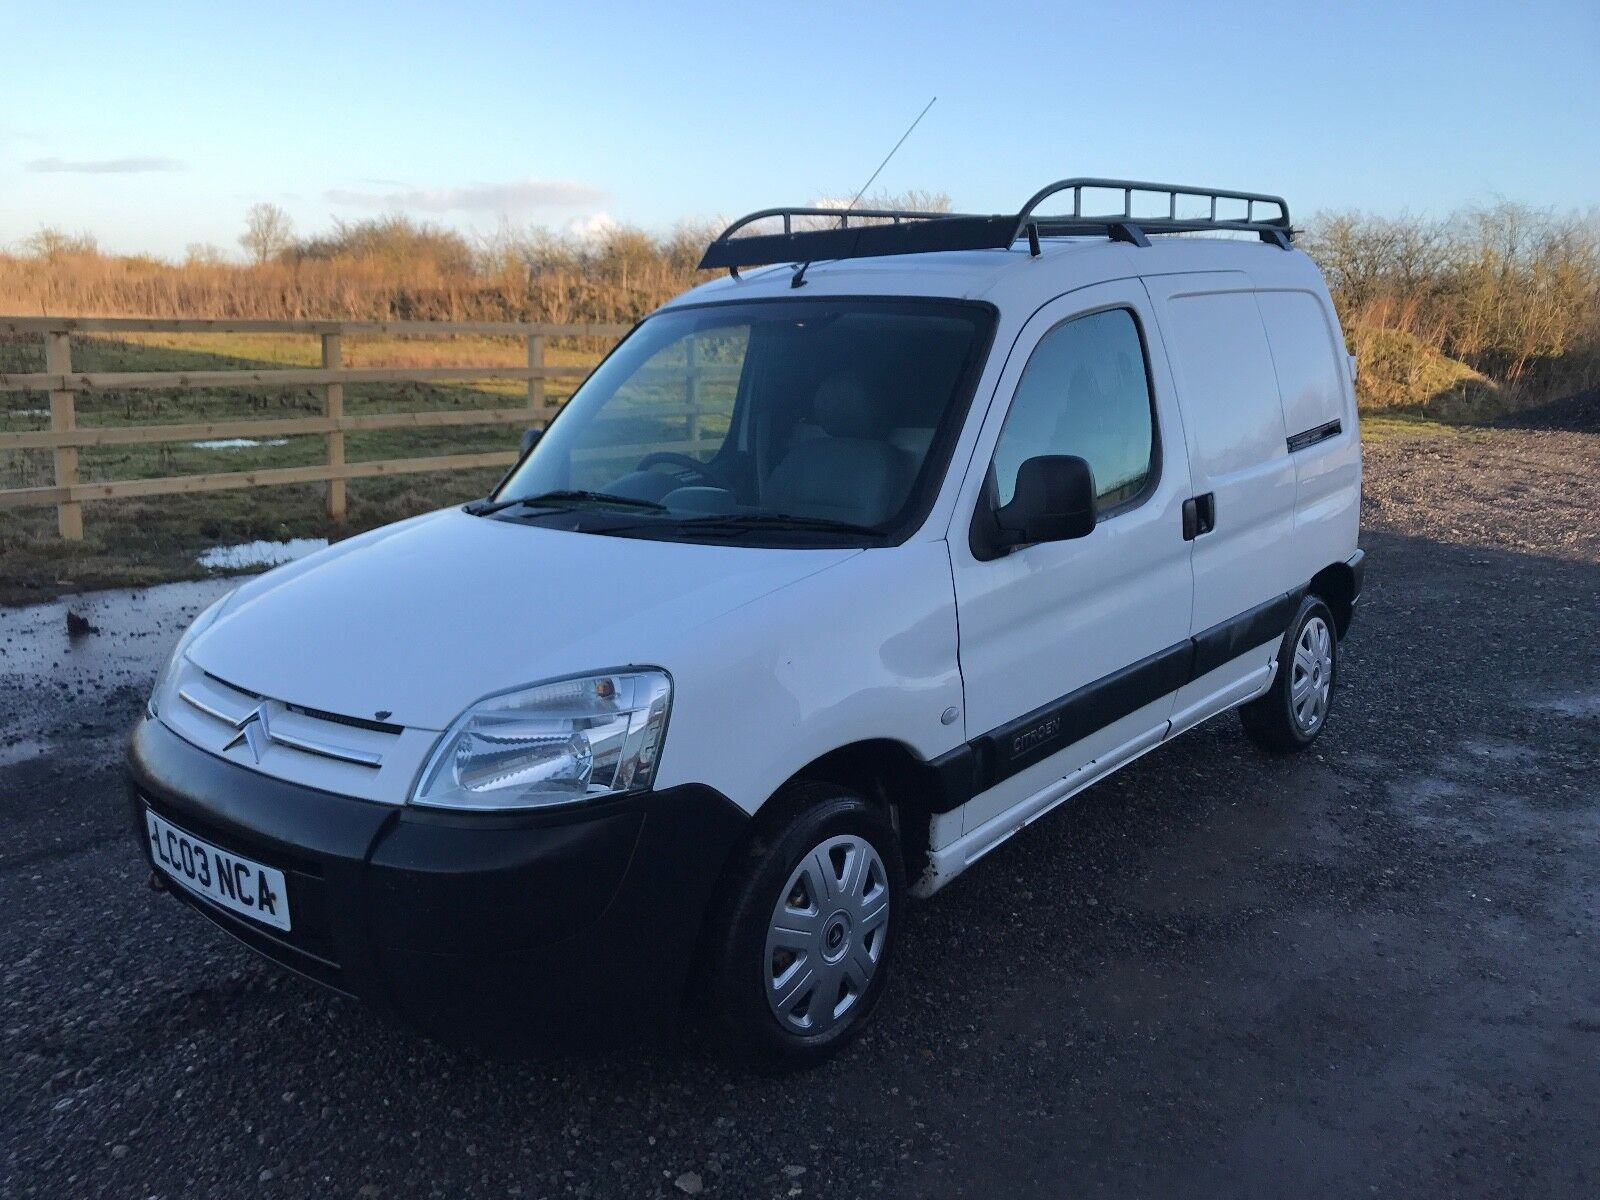 2003 citroen berlingo 1 9d 800 lx van white 120k mot failure spares or repair. Black Bedroom Furniture Sets. Home Design Ideas